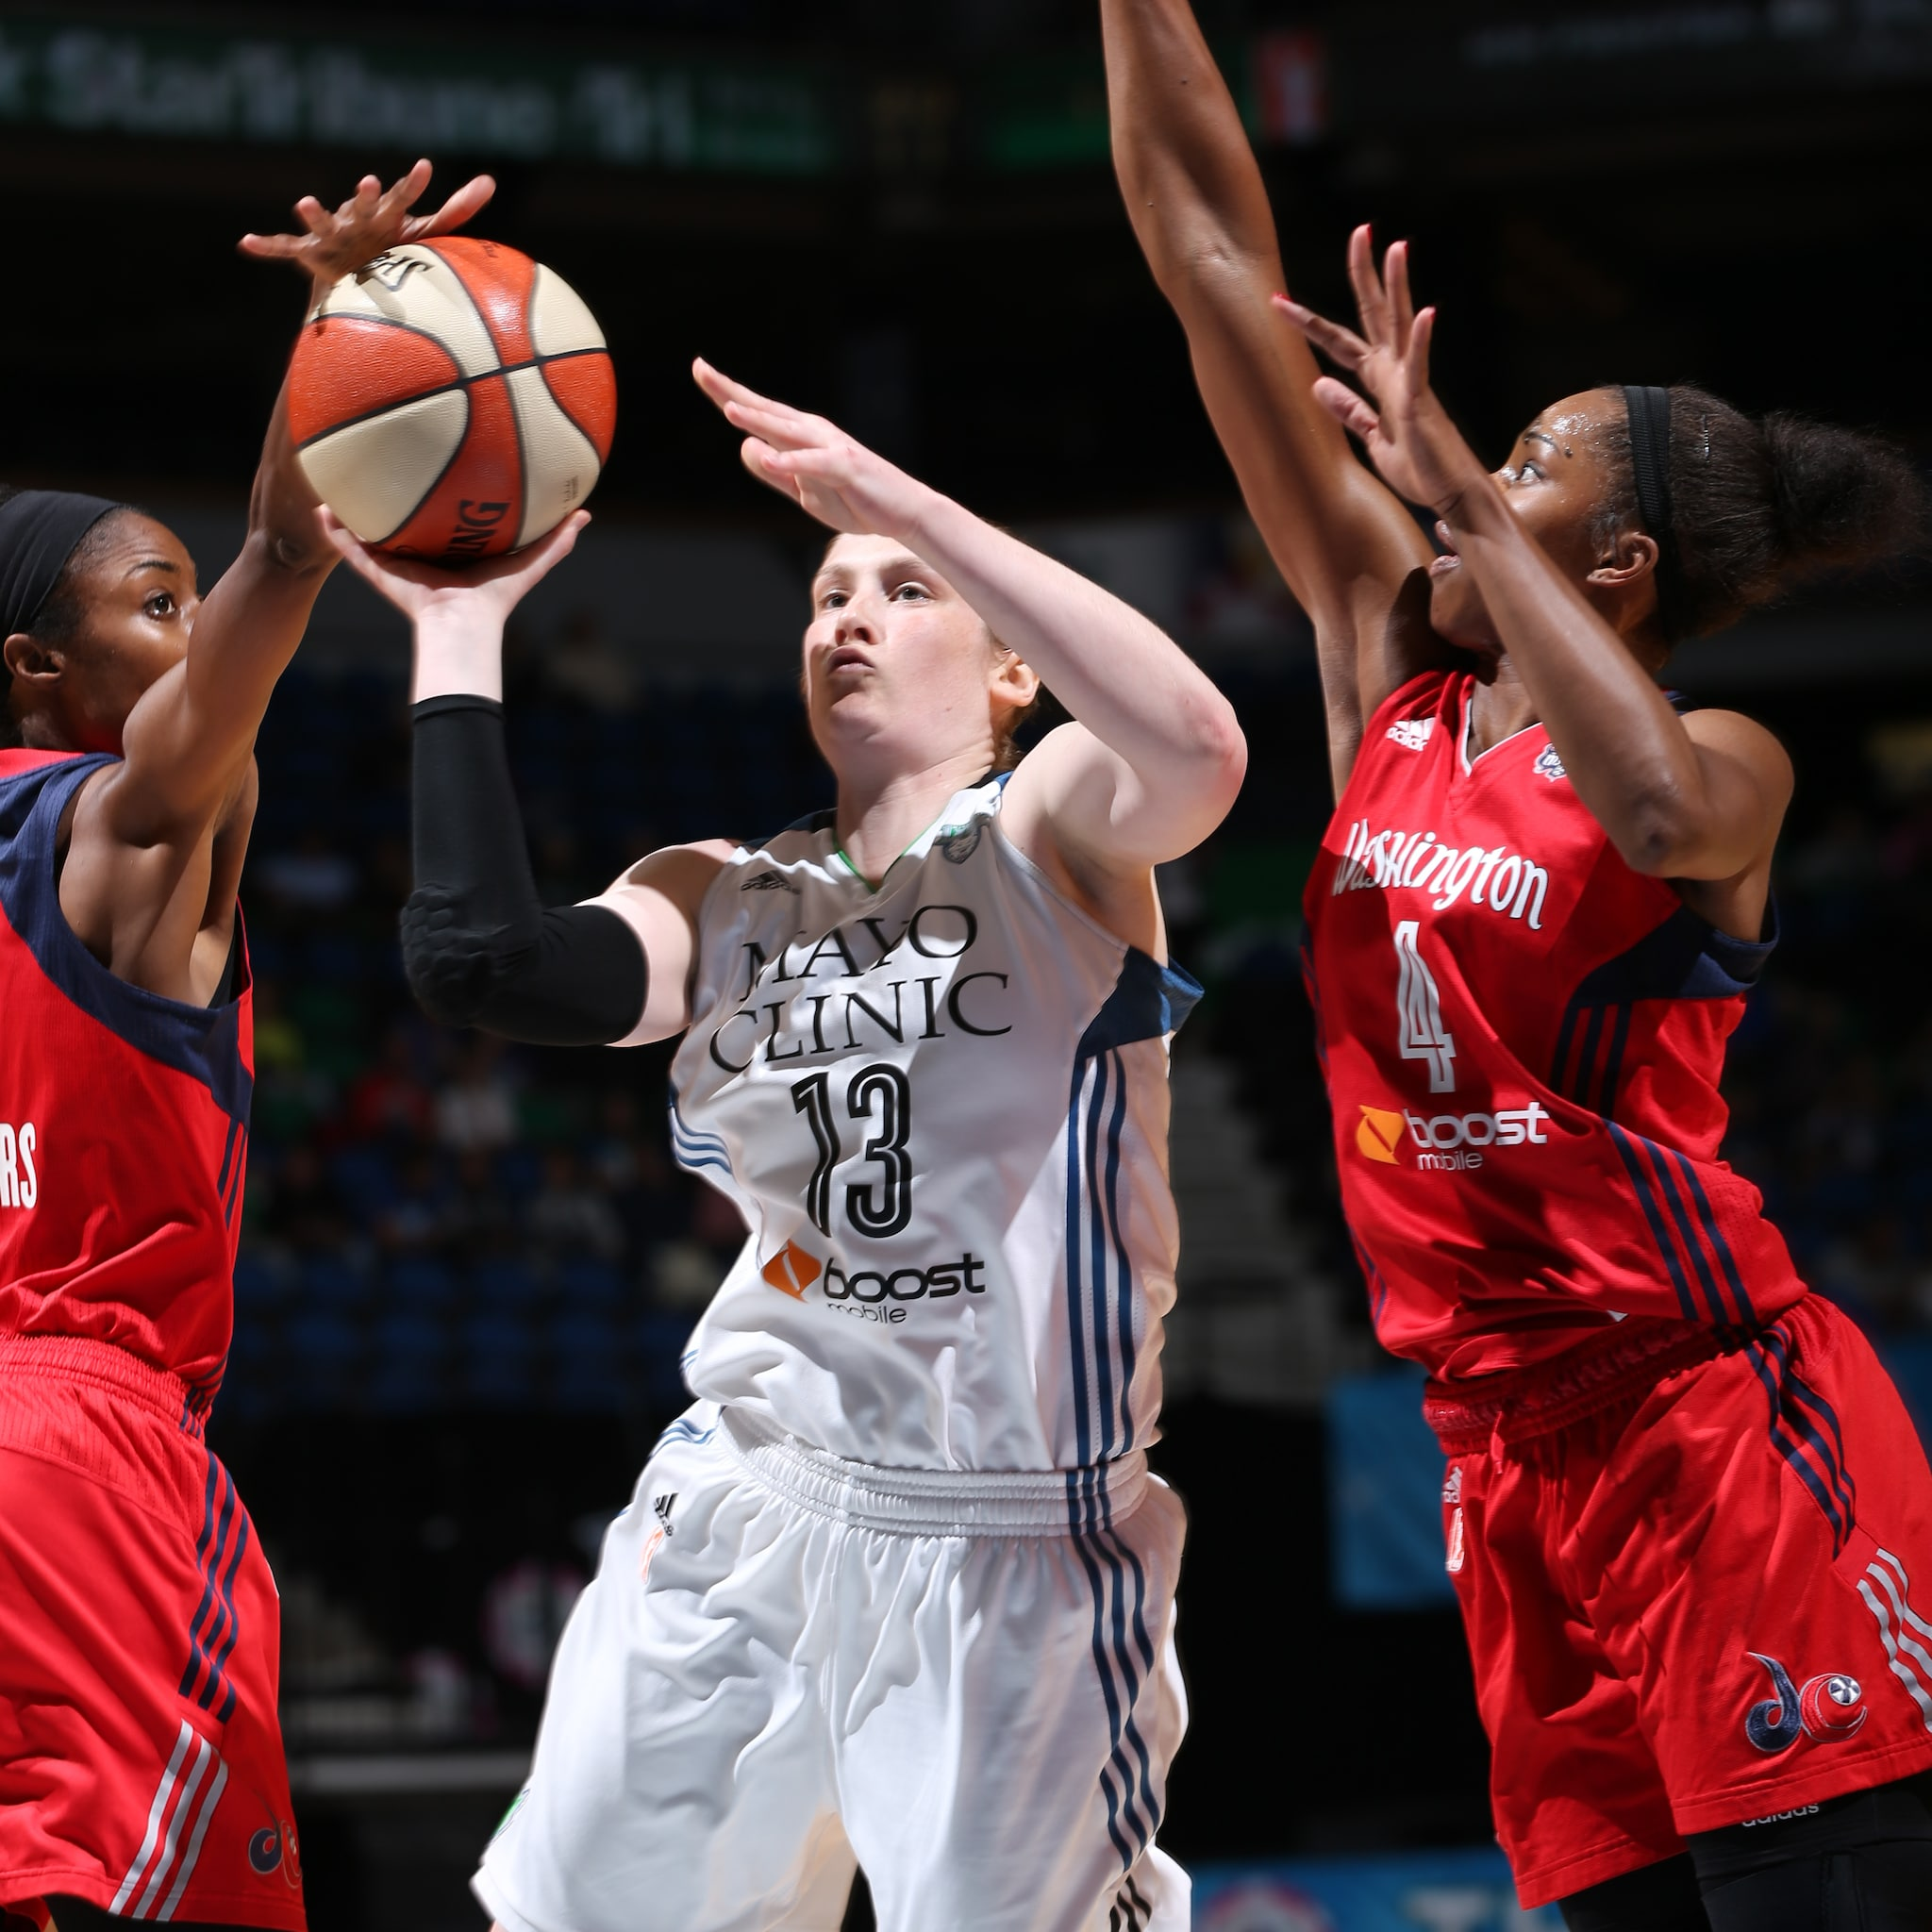 Lynx guard Lindsay Whalen had a rather quiet night, finishing with just four points, four rebounds and three assists.